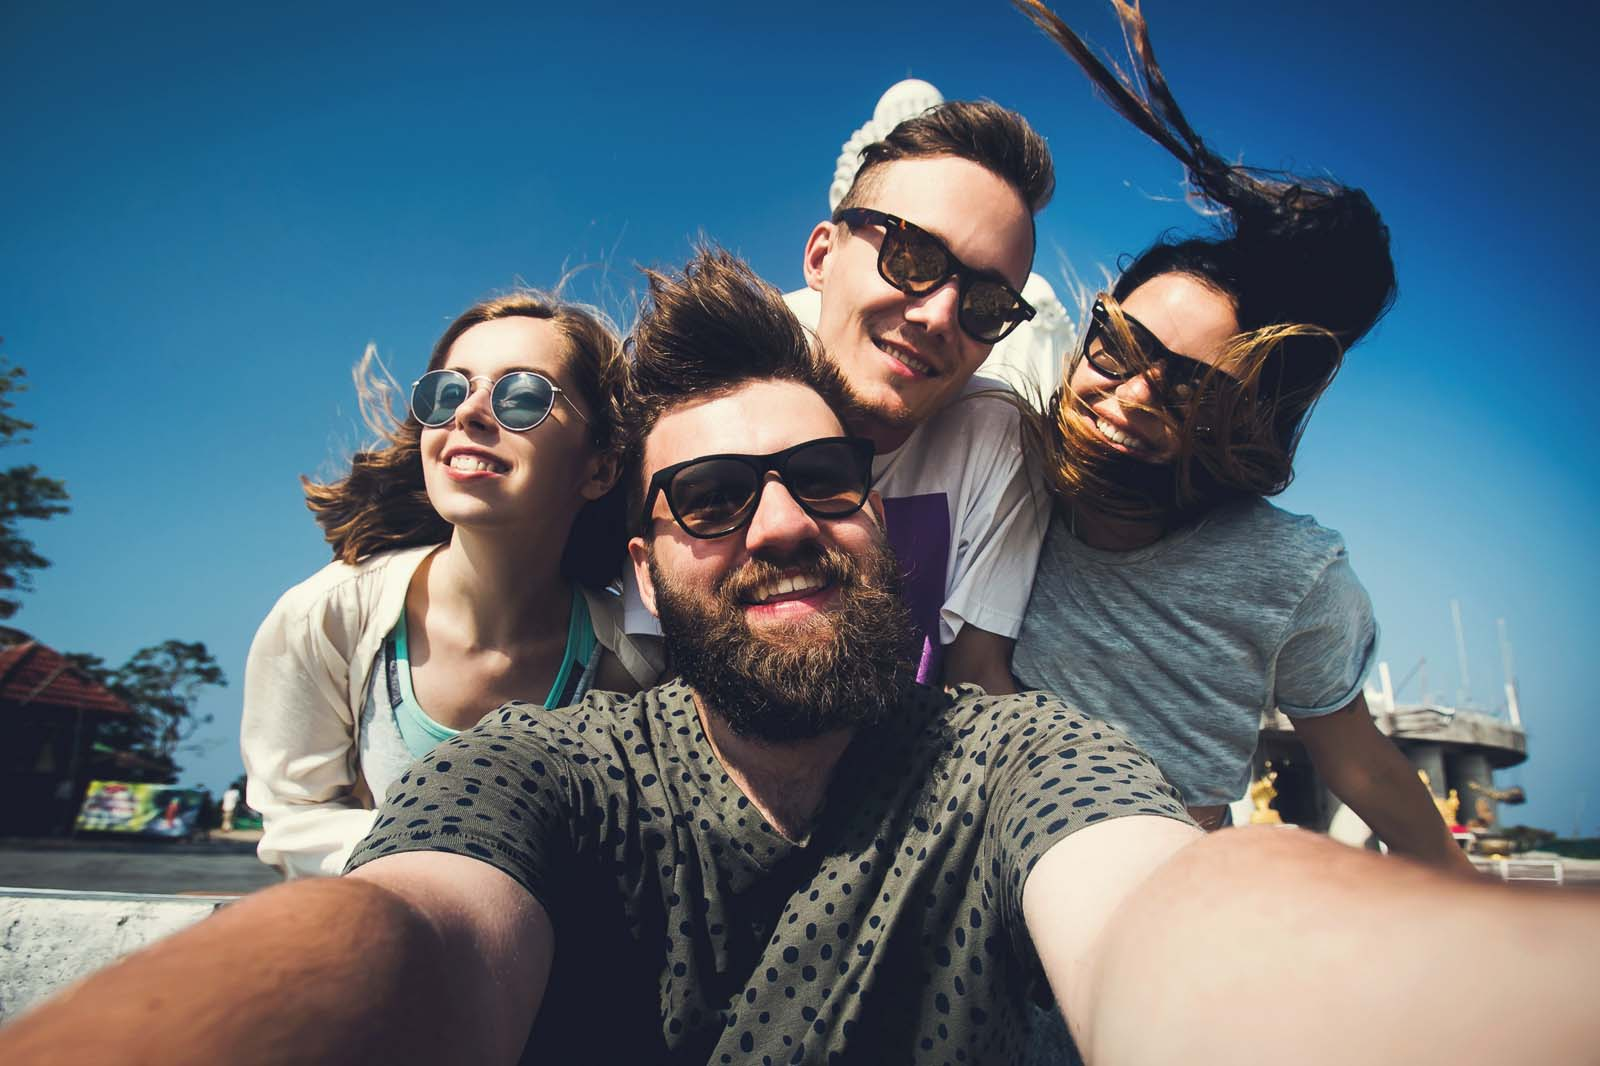 How can I participate in Work and Travel USA with my friends?